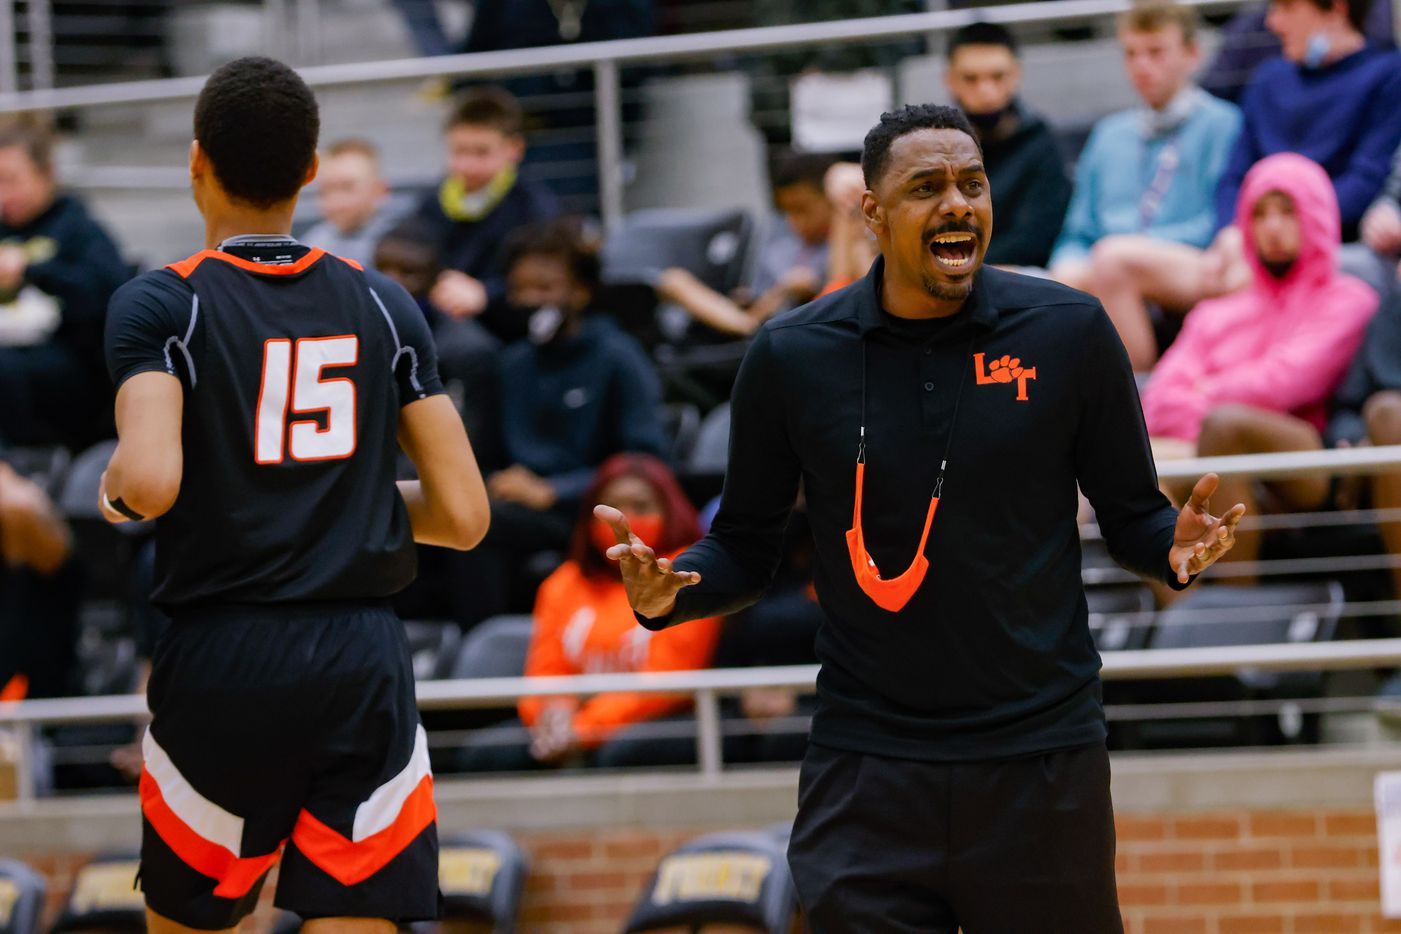 Lancaster's coach Ferrin Douglas during the first half of a boys basketball UIL Class 5A Region II playoff game against Kimball in Forney on Friday, March 5, 2021. (Juan Figueroa/ The Dallas Morning News)